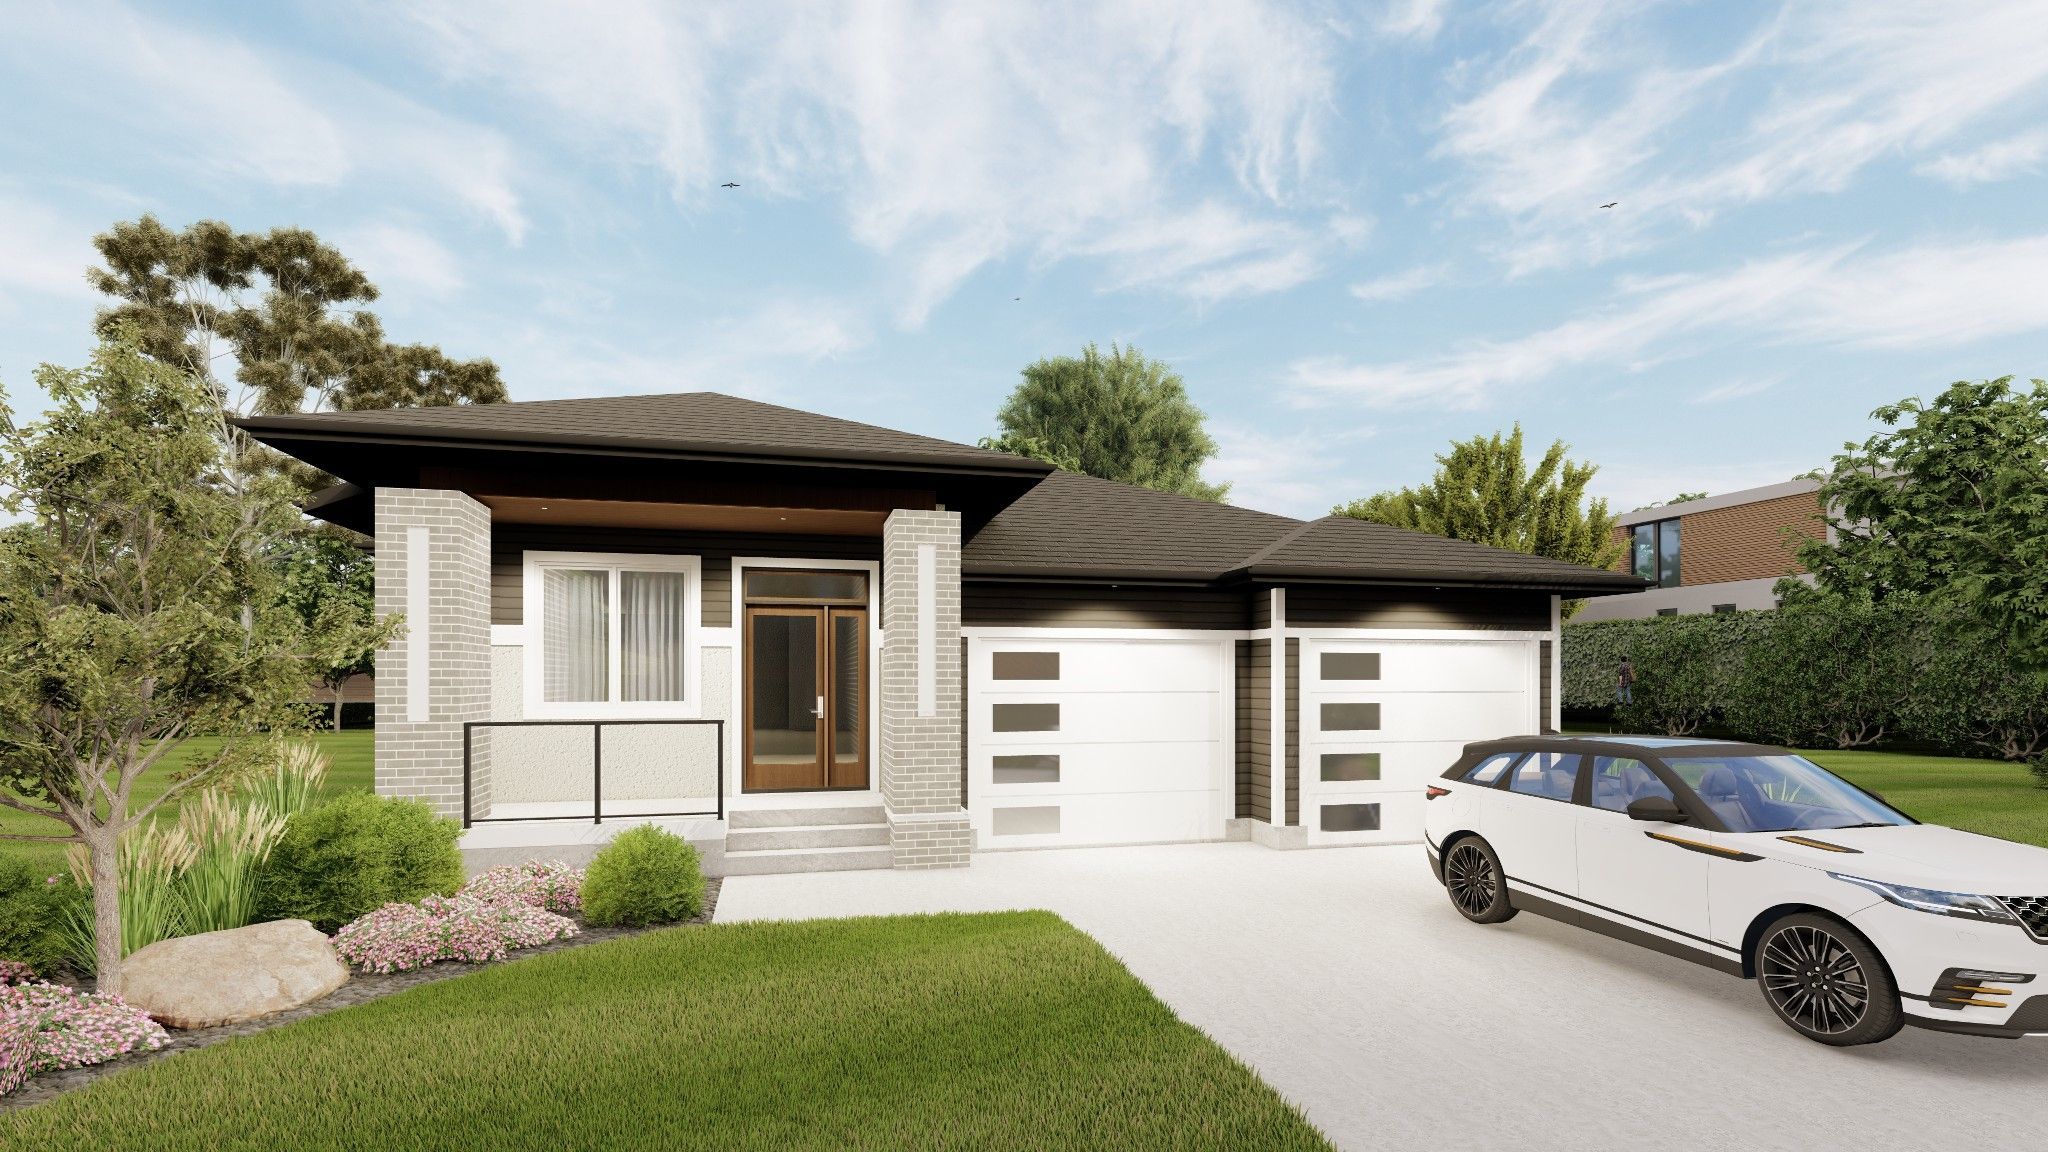 Main Photo: 30 Tanager Trail in Winnipeg: Sage Creek Single Family Detached for sale (2K)